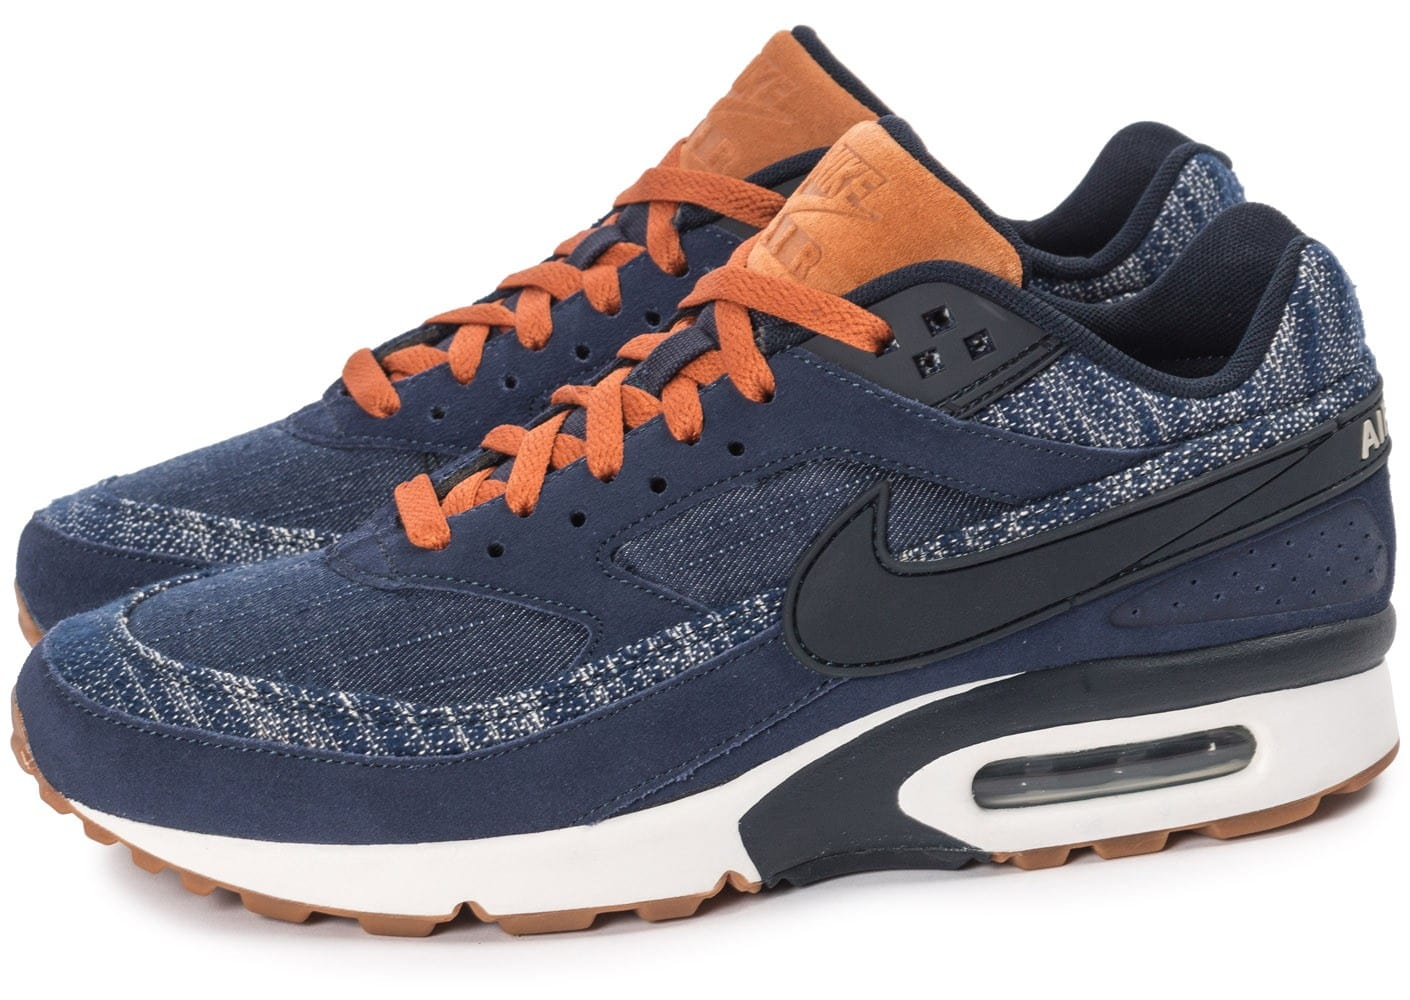 nike air max bw premium denim chaussures homme chausport. Black Bedroom Furniture Sets. Home Design Ideas